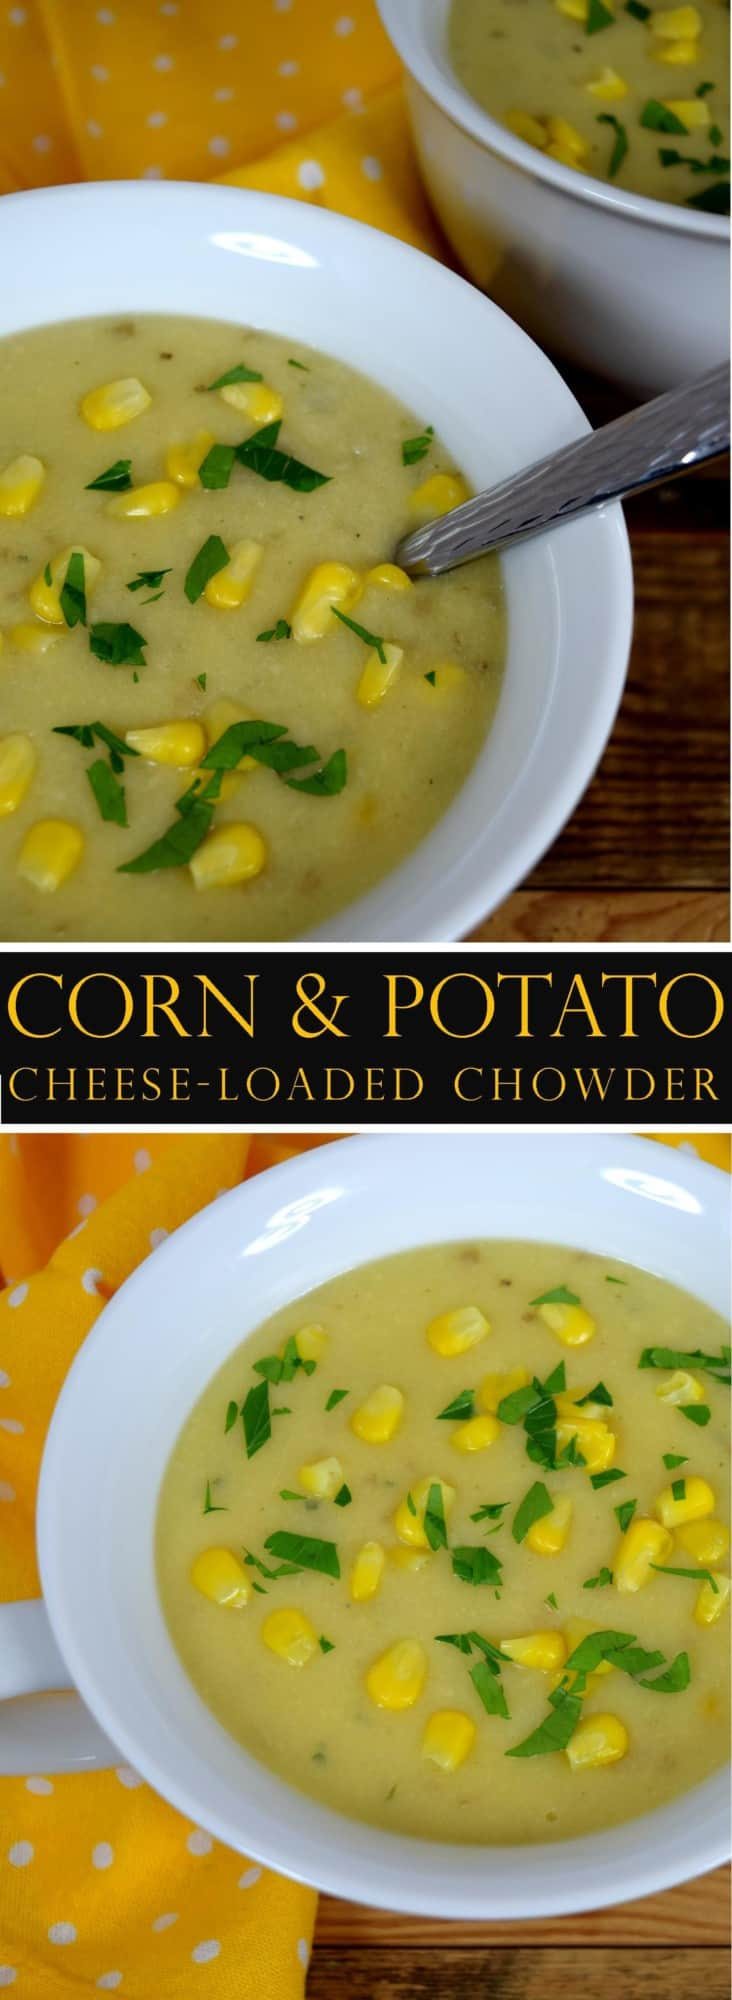 Corn and Potato Cheese Loaded Chowder